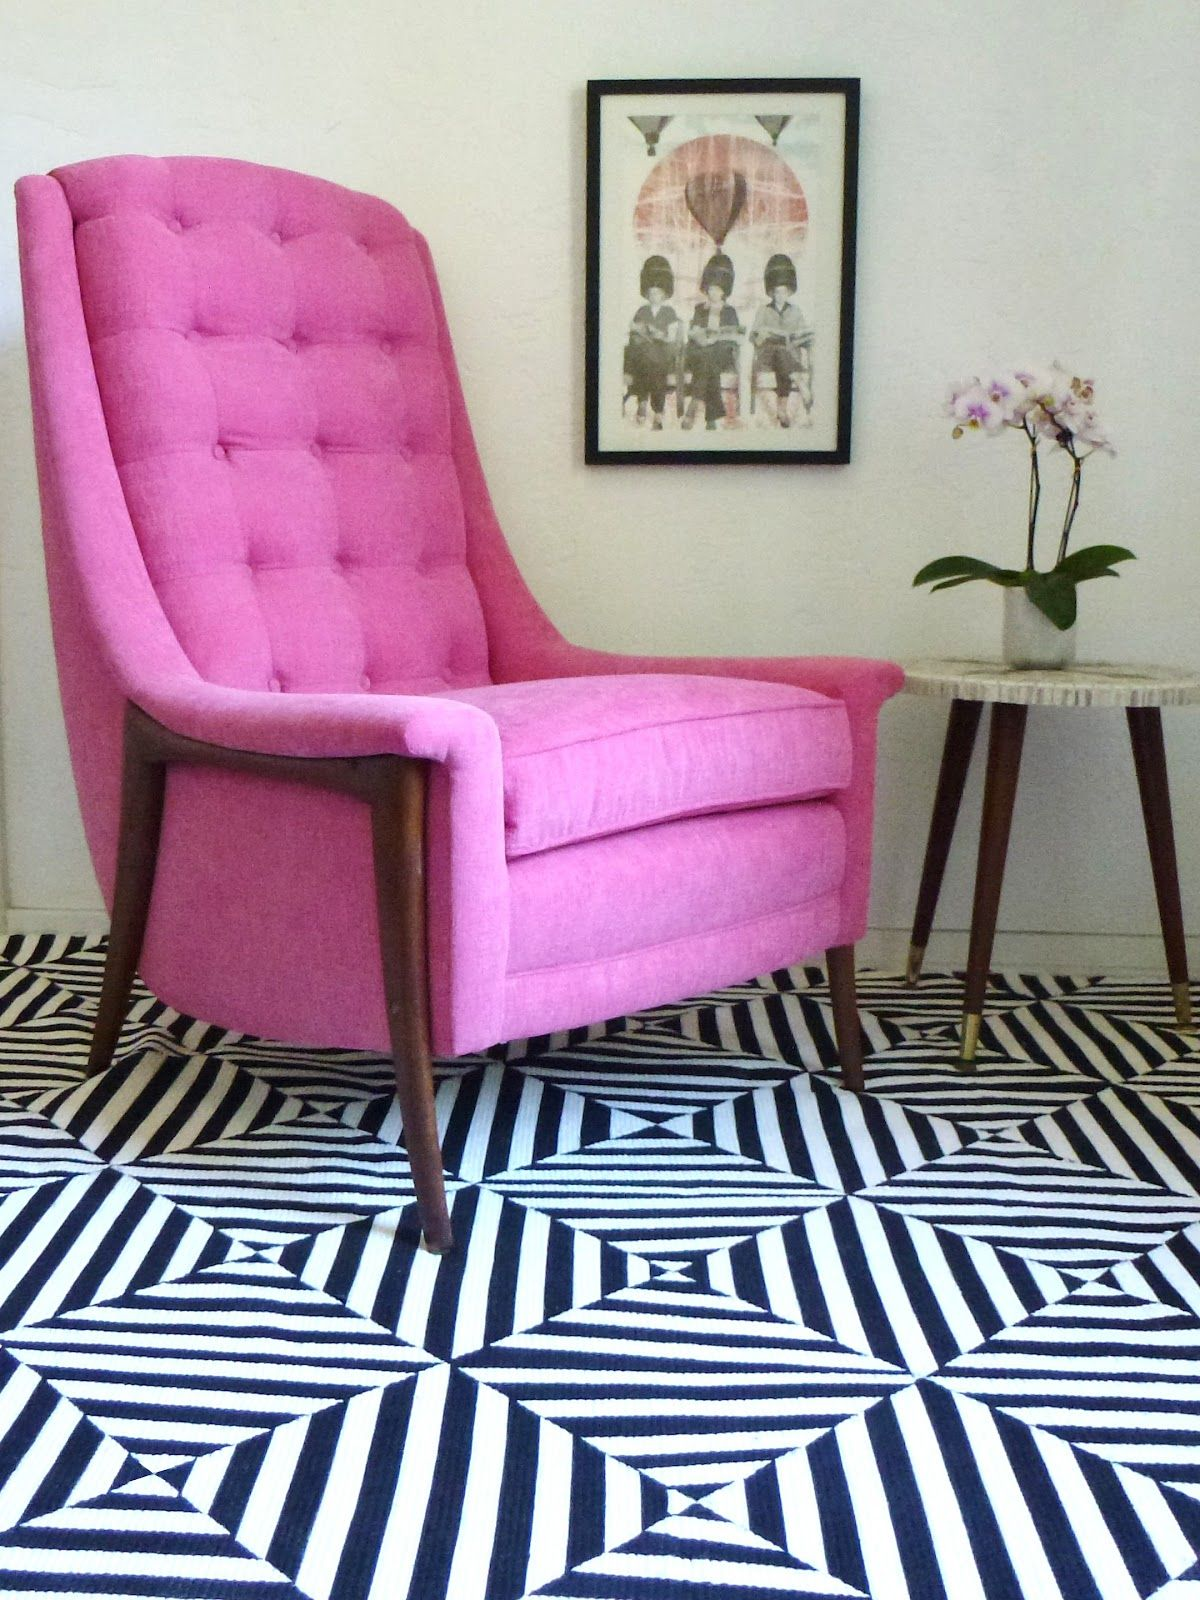 DIY: black & white extreme stripes painted rug...that chair & rug